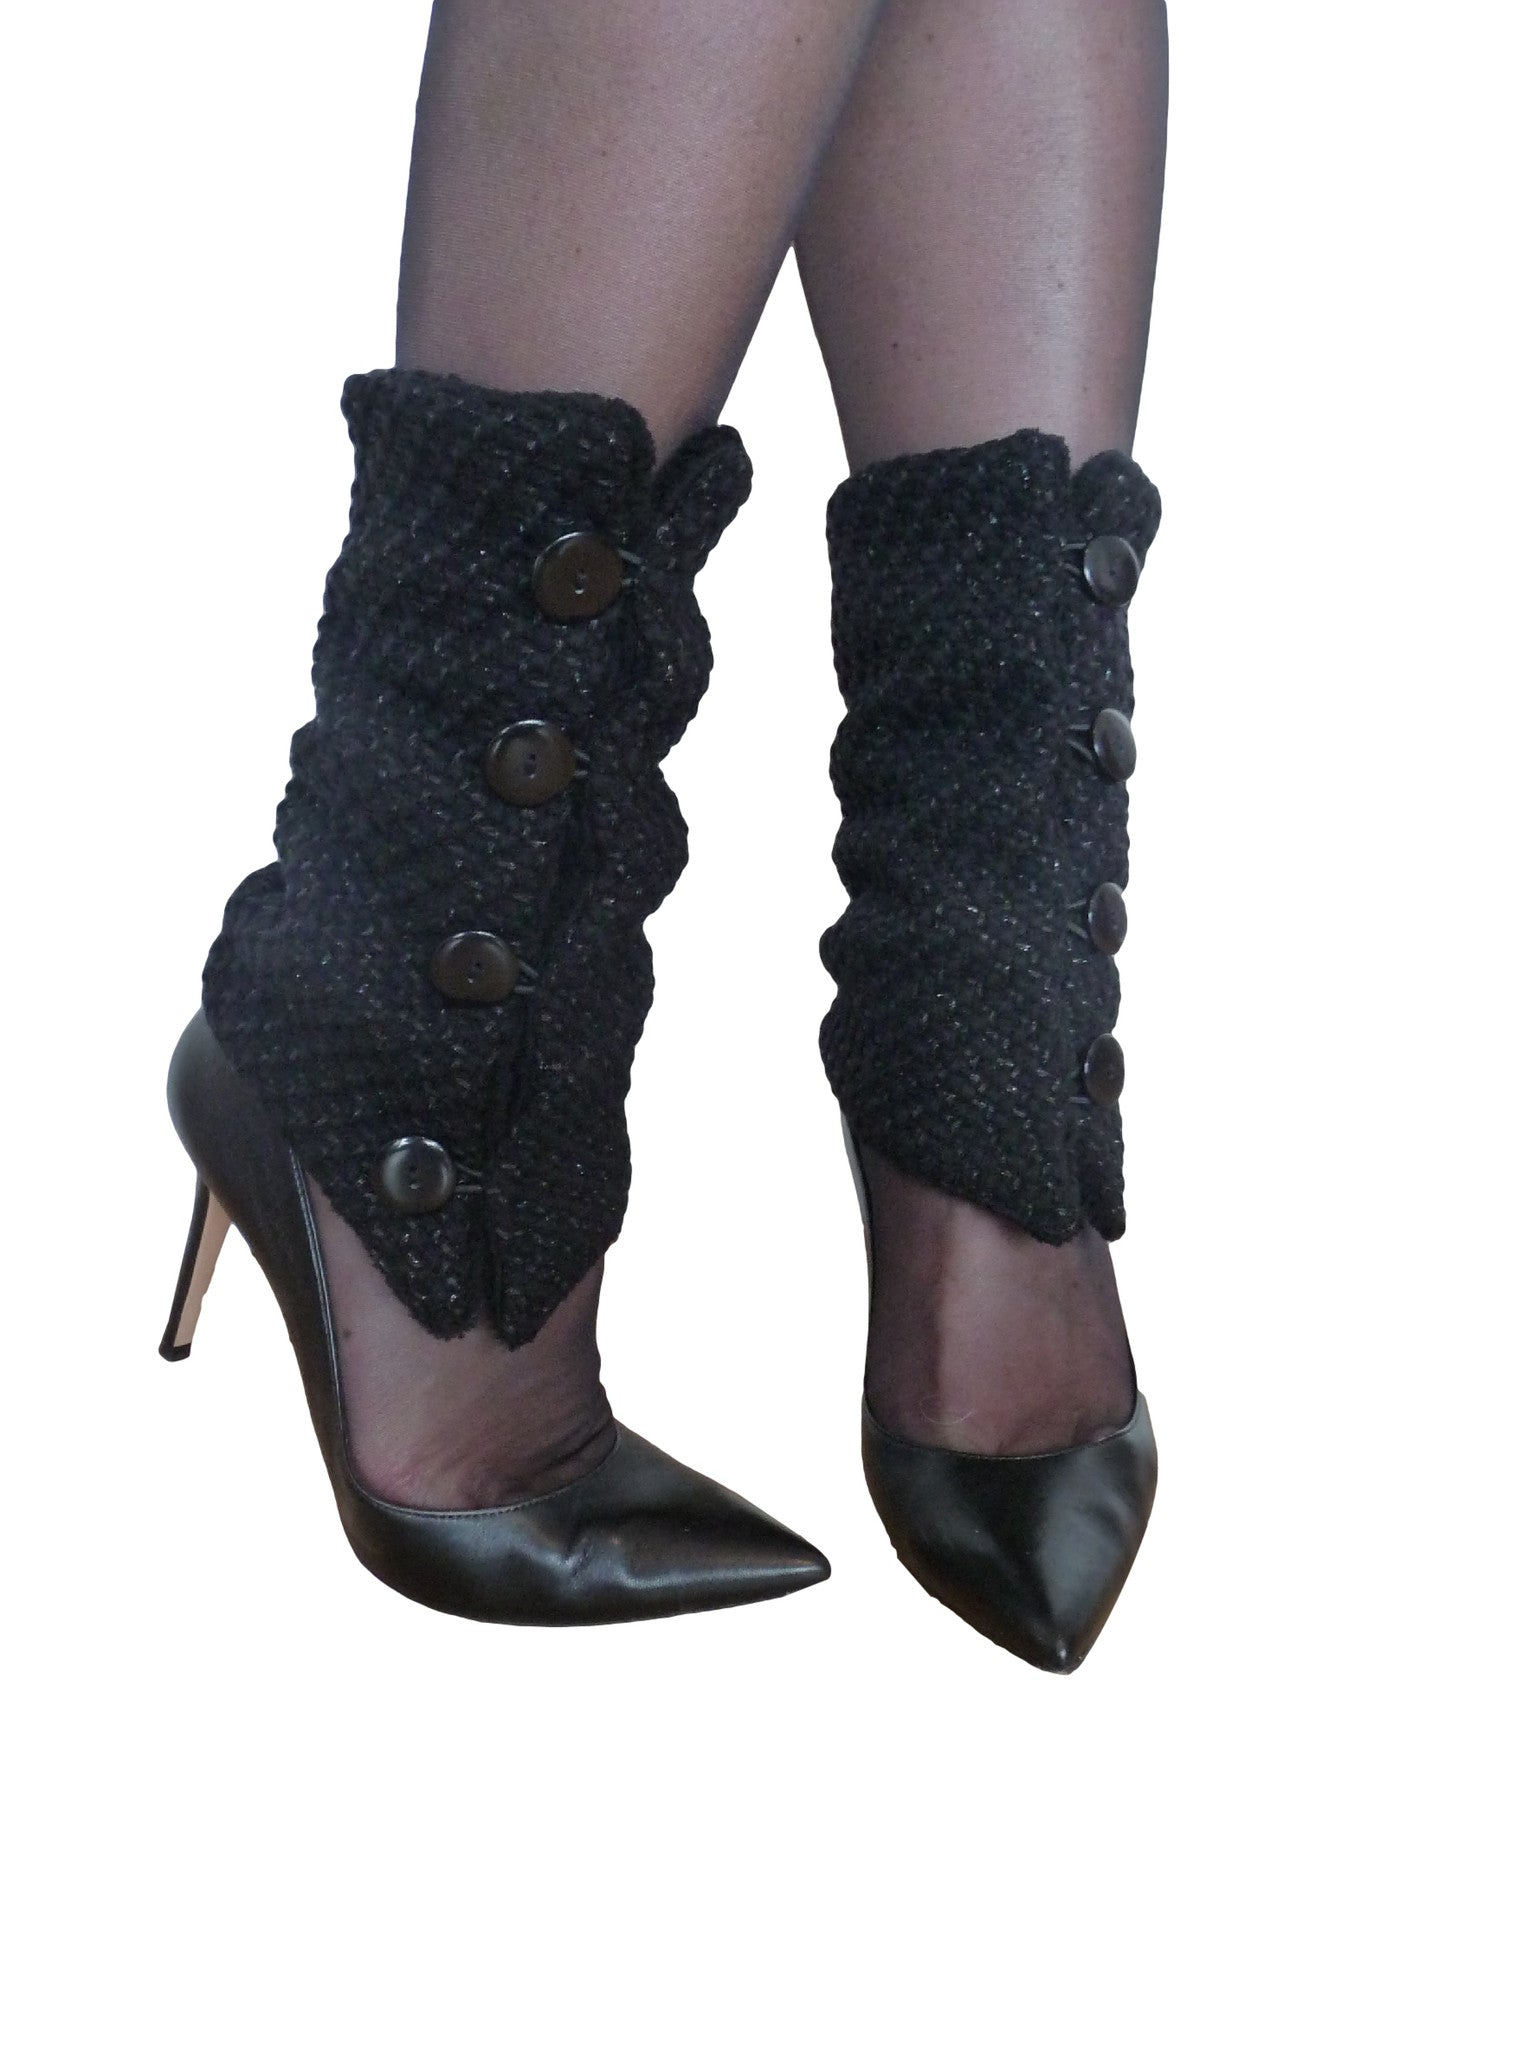 Black and Shine Leg Warmers